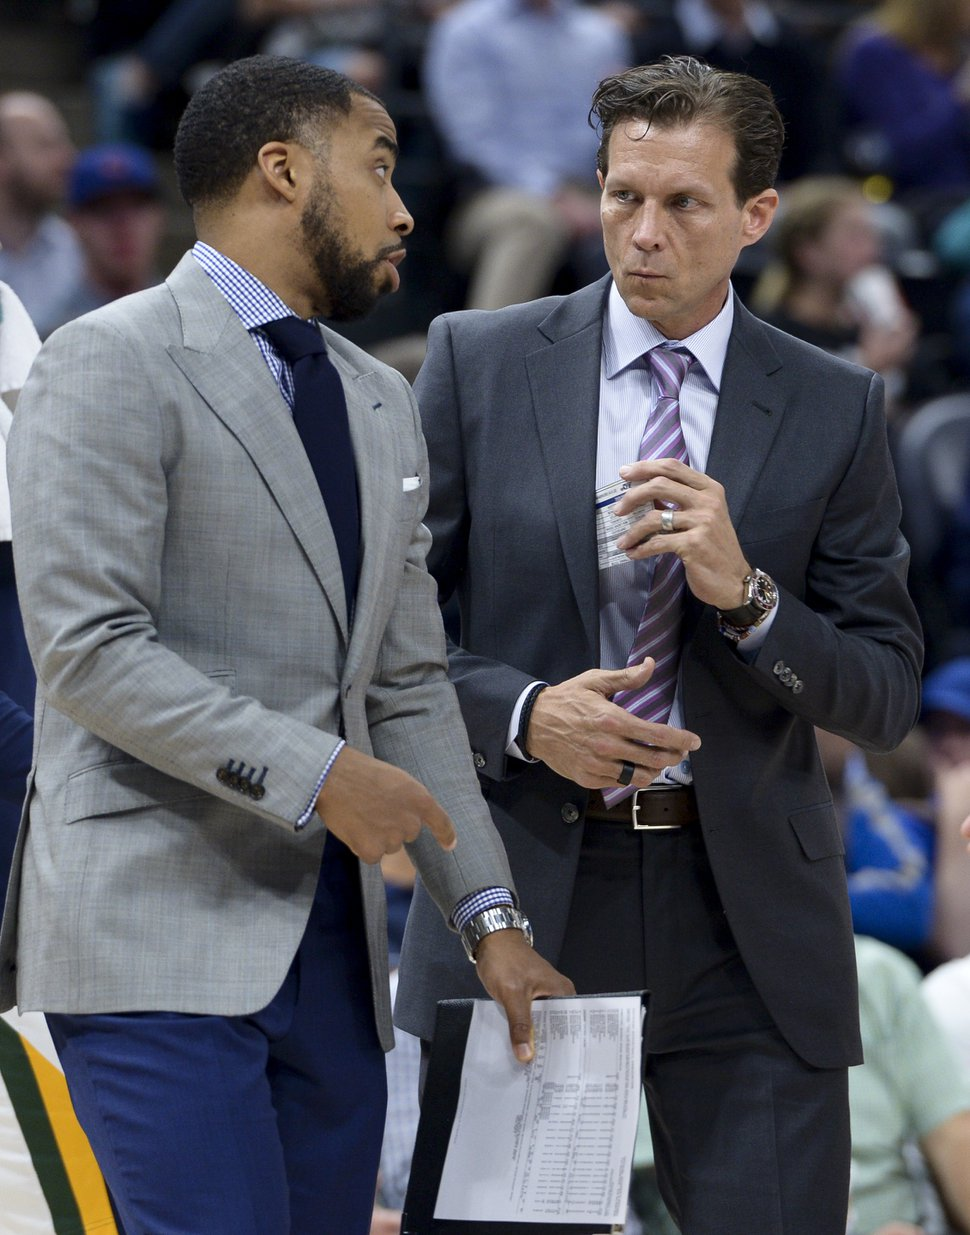 (Leah Hogsten | The Salt Lake Tribune) Utah Jazz assistant coach Johnnie Bryant talks strategy with head coach Quin Snyder during a time out against the Golden State Warriors , Tuesday, April 10, 2018 at the Vivint Smart Home Arena.